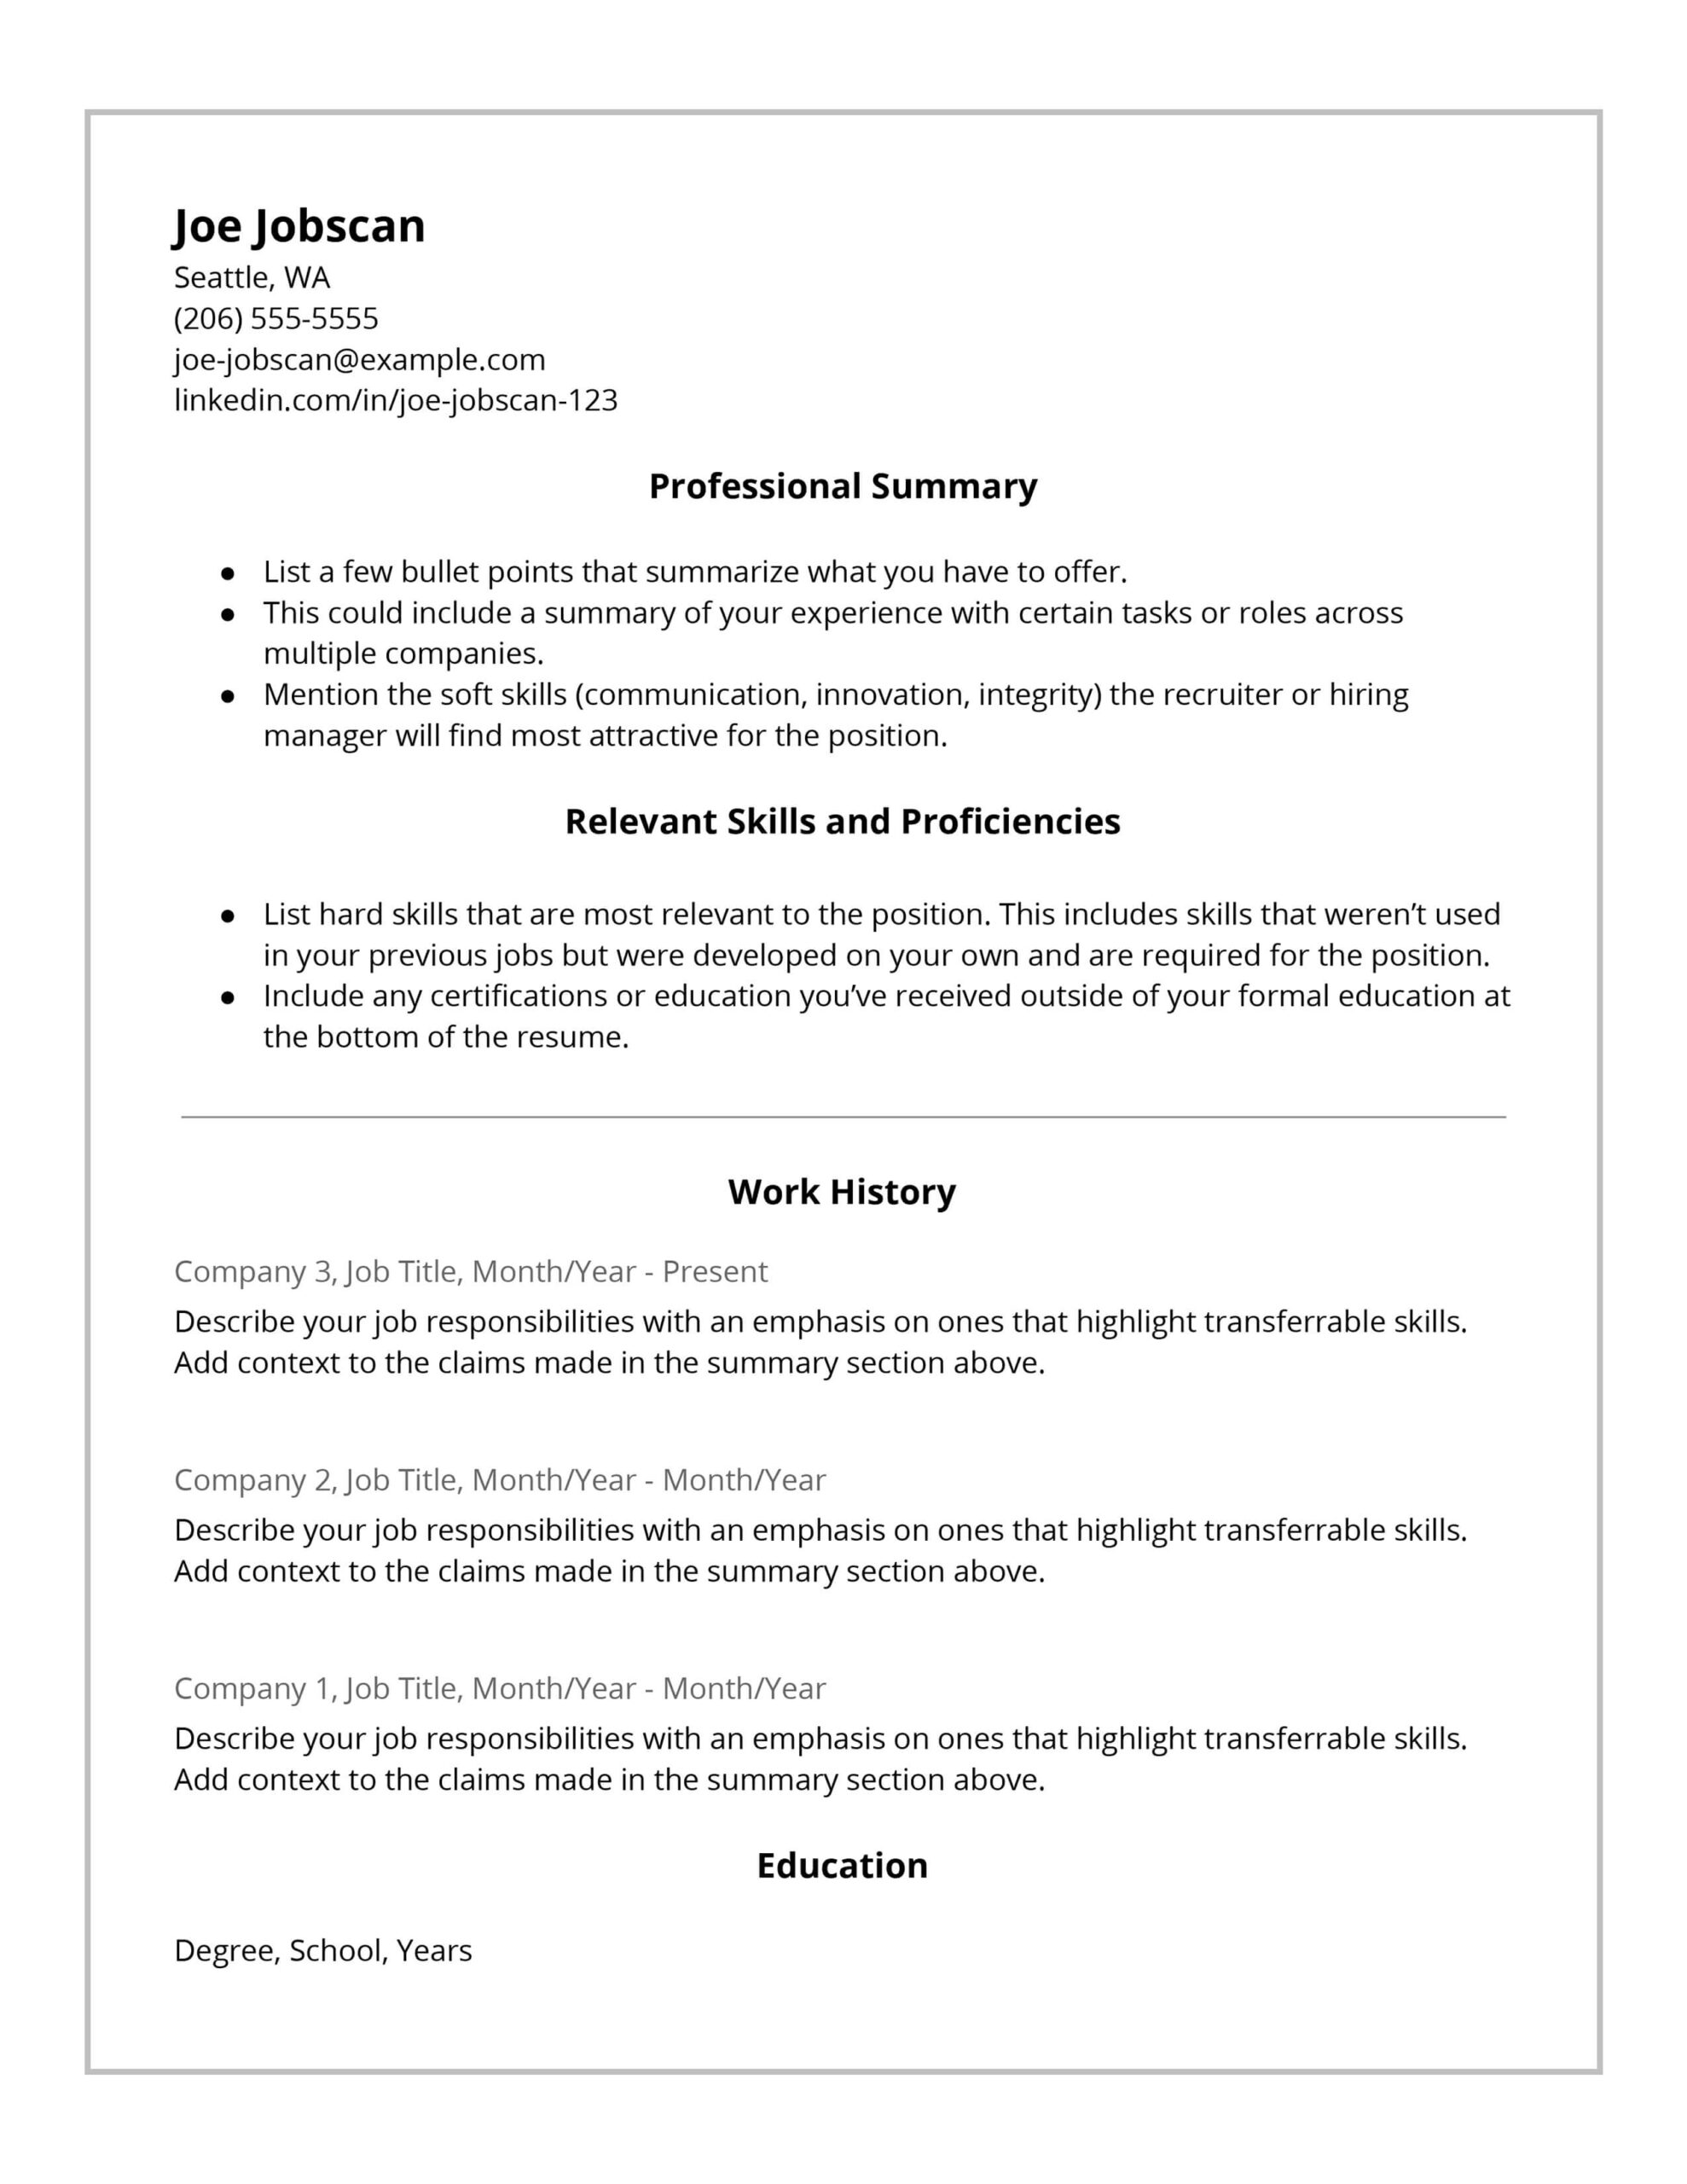 recruiters hate the functional resume format here customer service hybrid template new Resume Customer Service Functional Resume